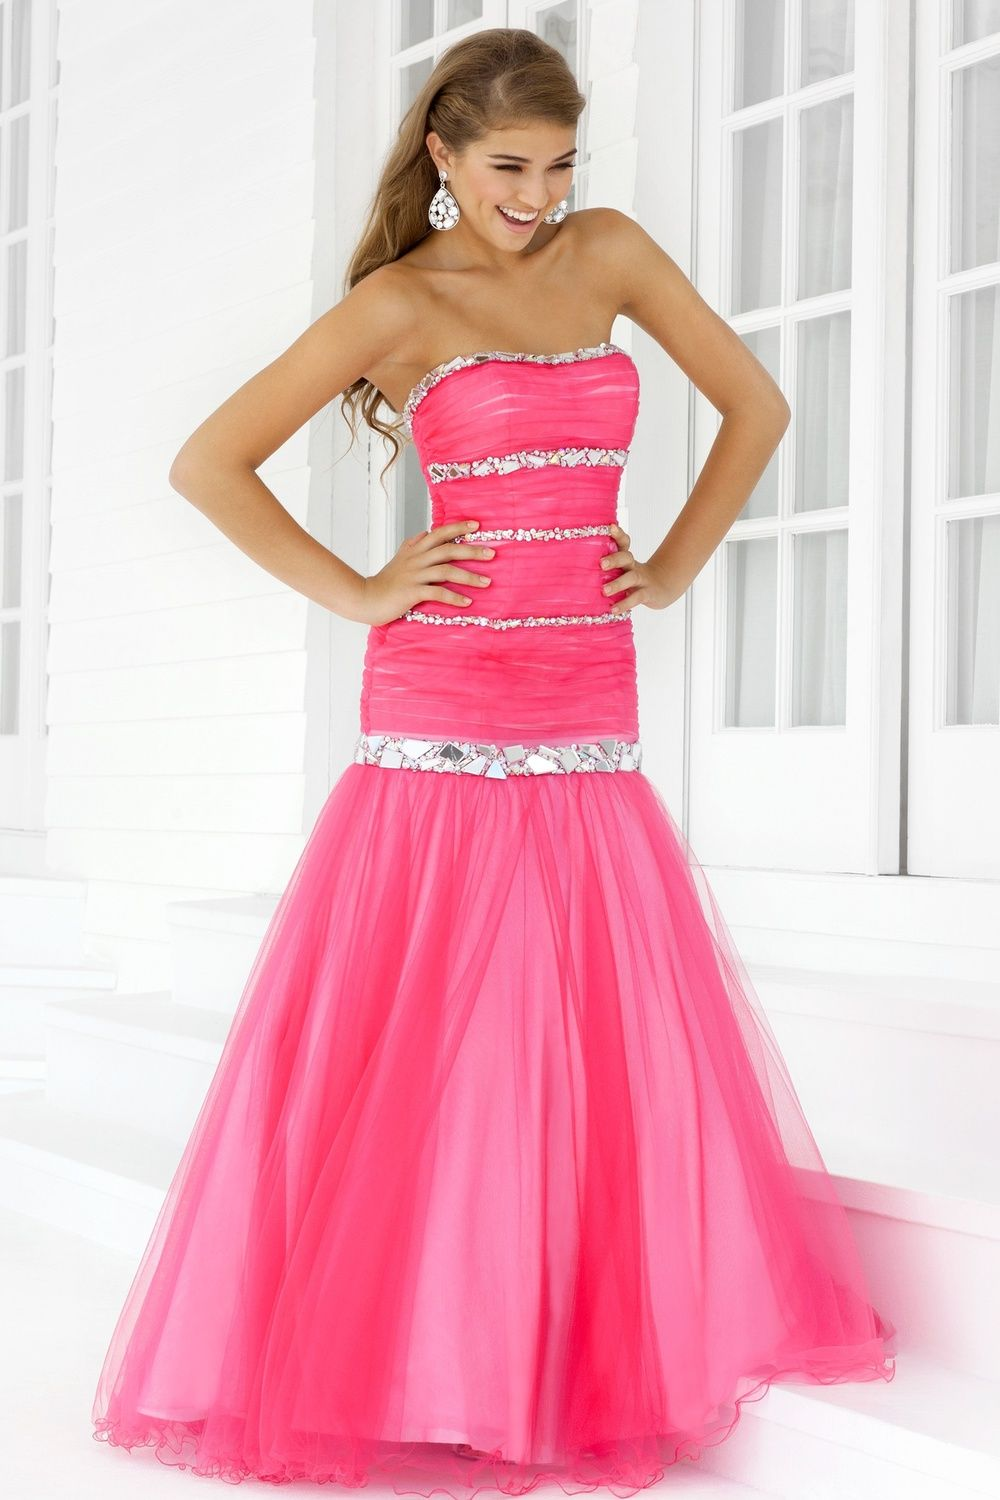 Mermaid pink prom dress ball gown strapless beaded | Prom Dresses ...